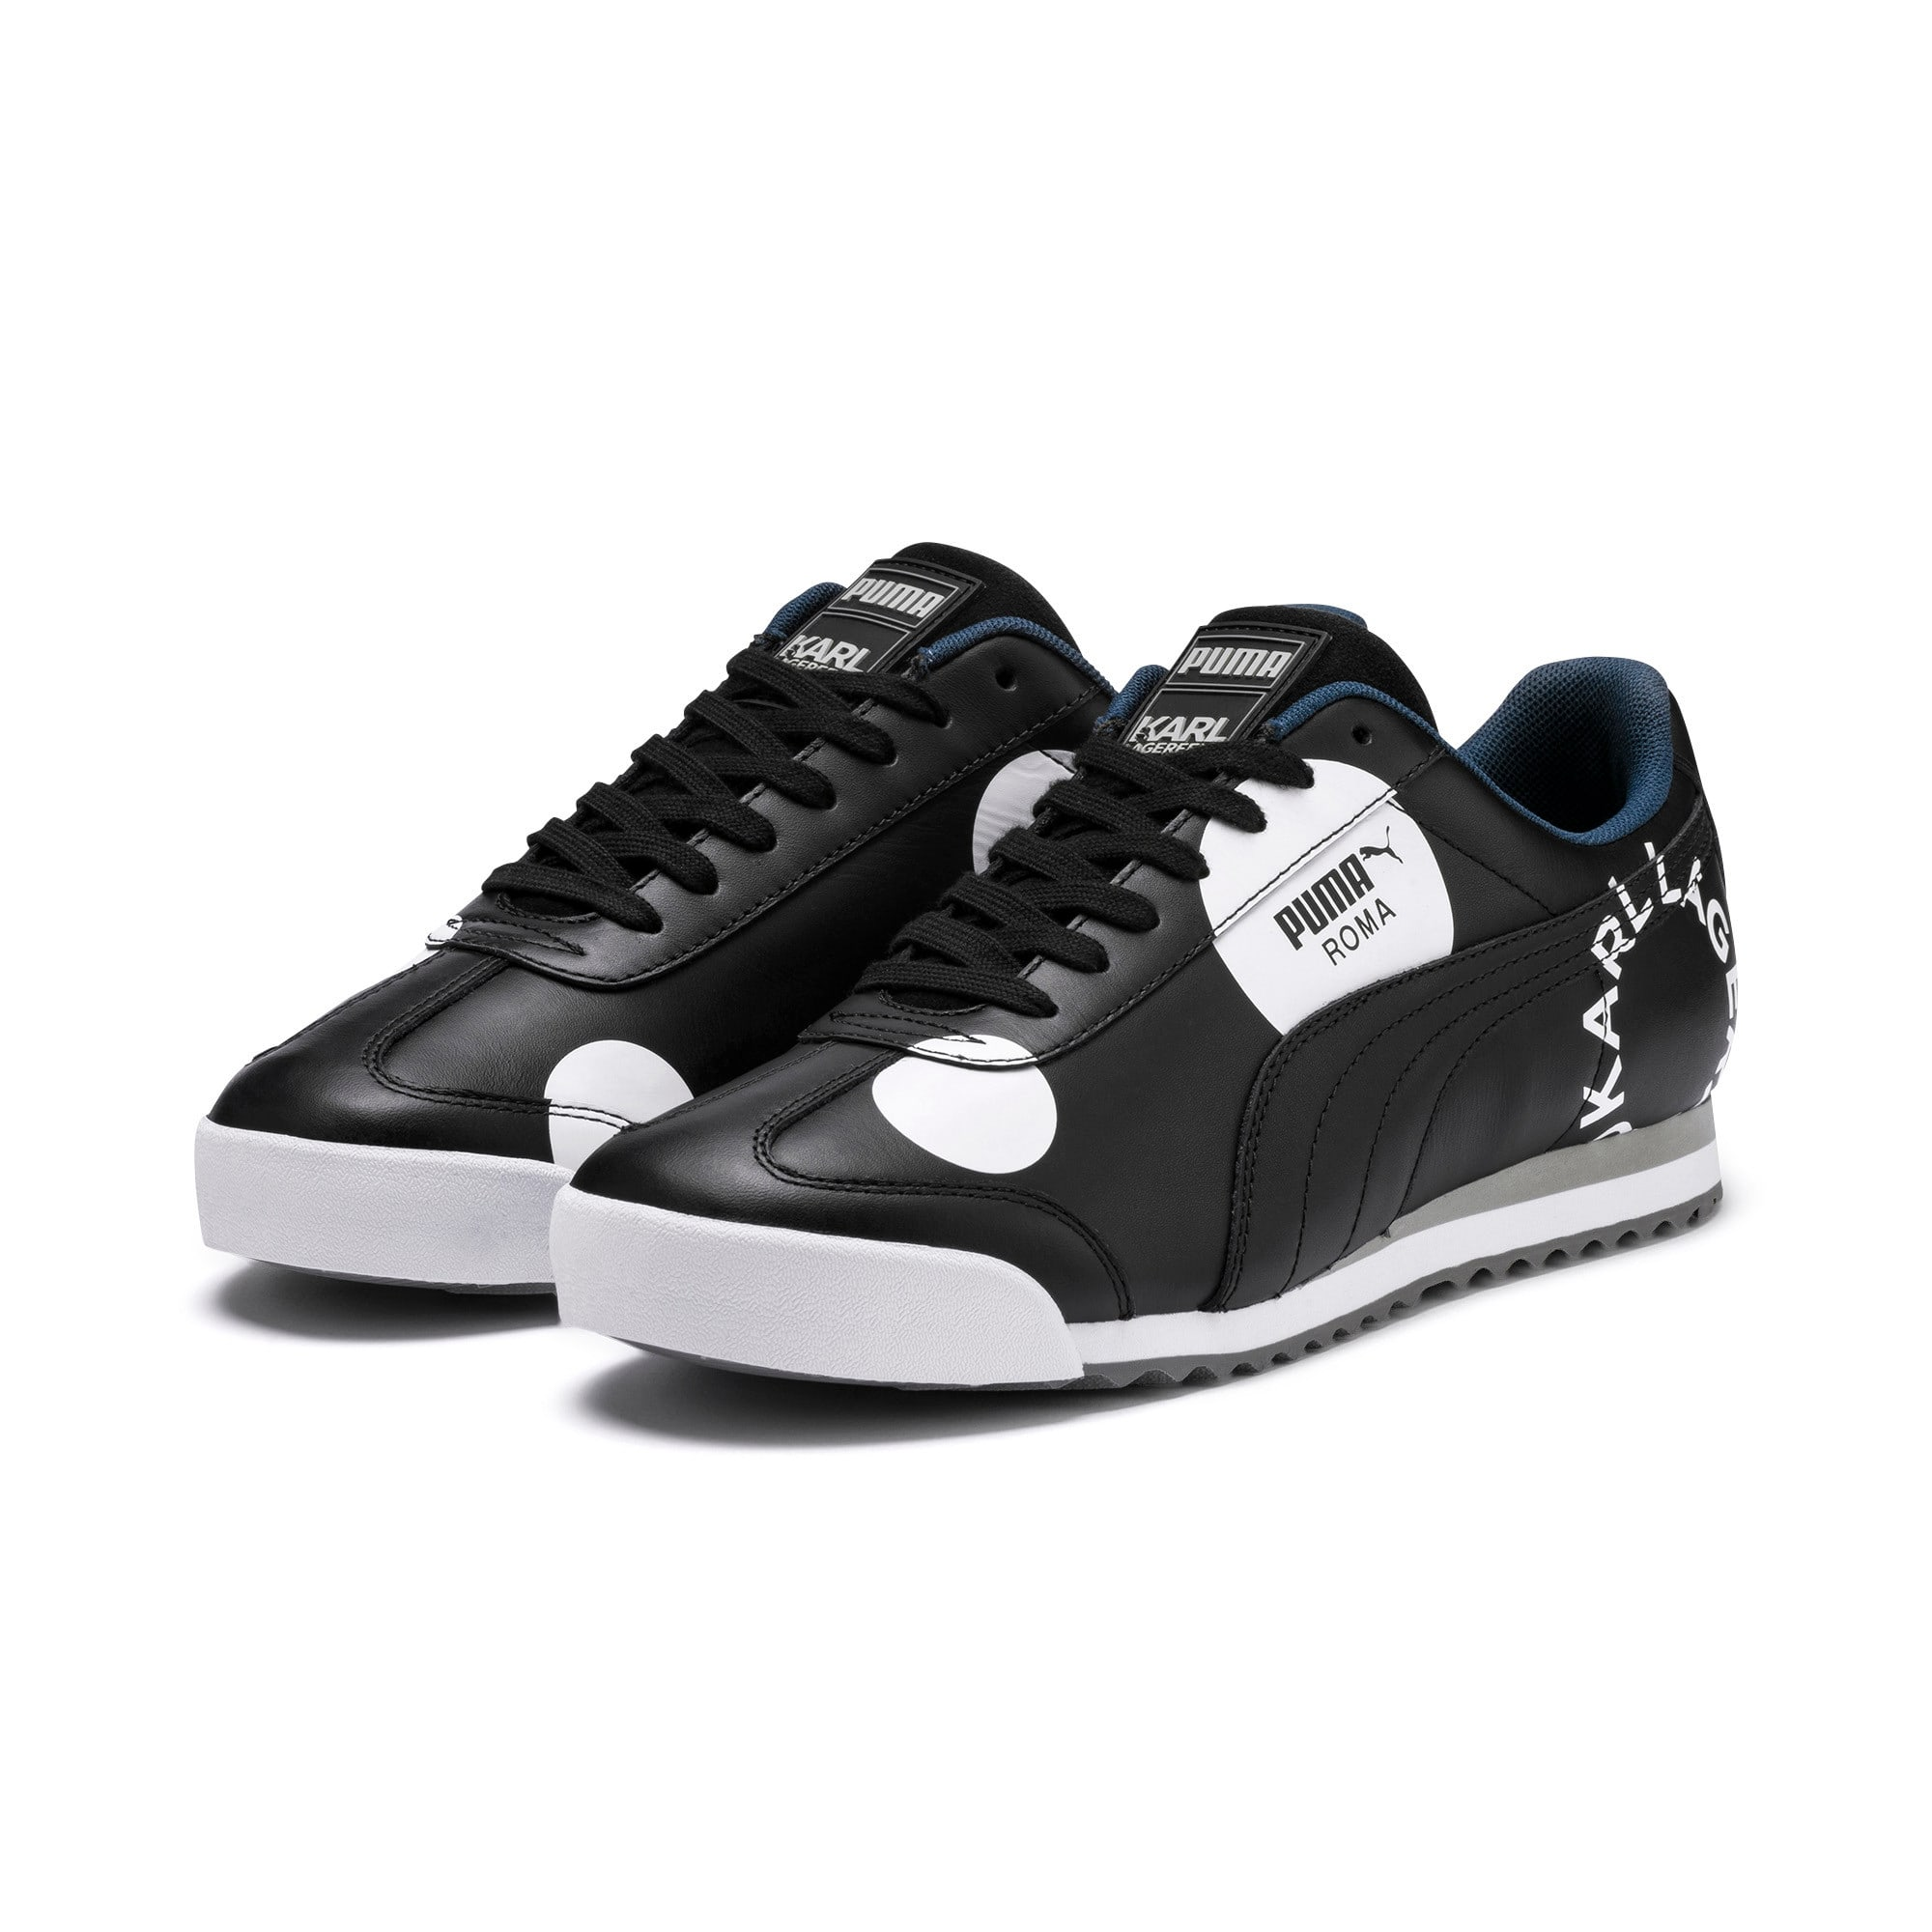 Thumbnail 2 of Basket Roma Polkadot PUMA x KARL LAGERFELD, Puma Black, medium